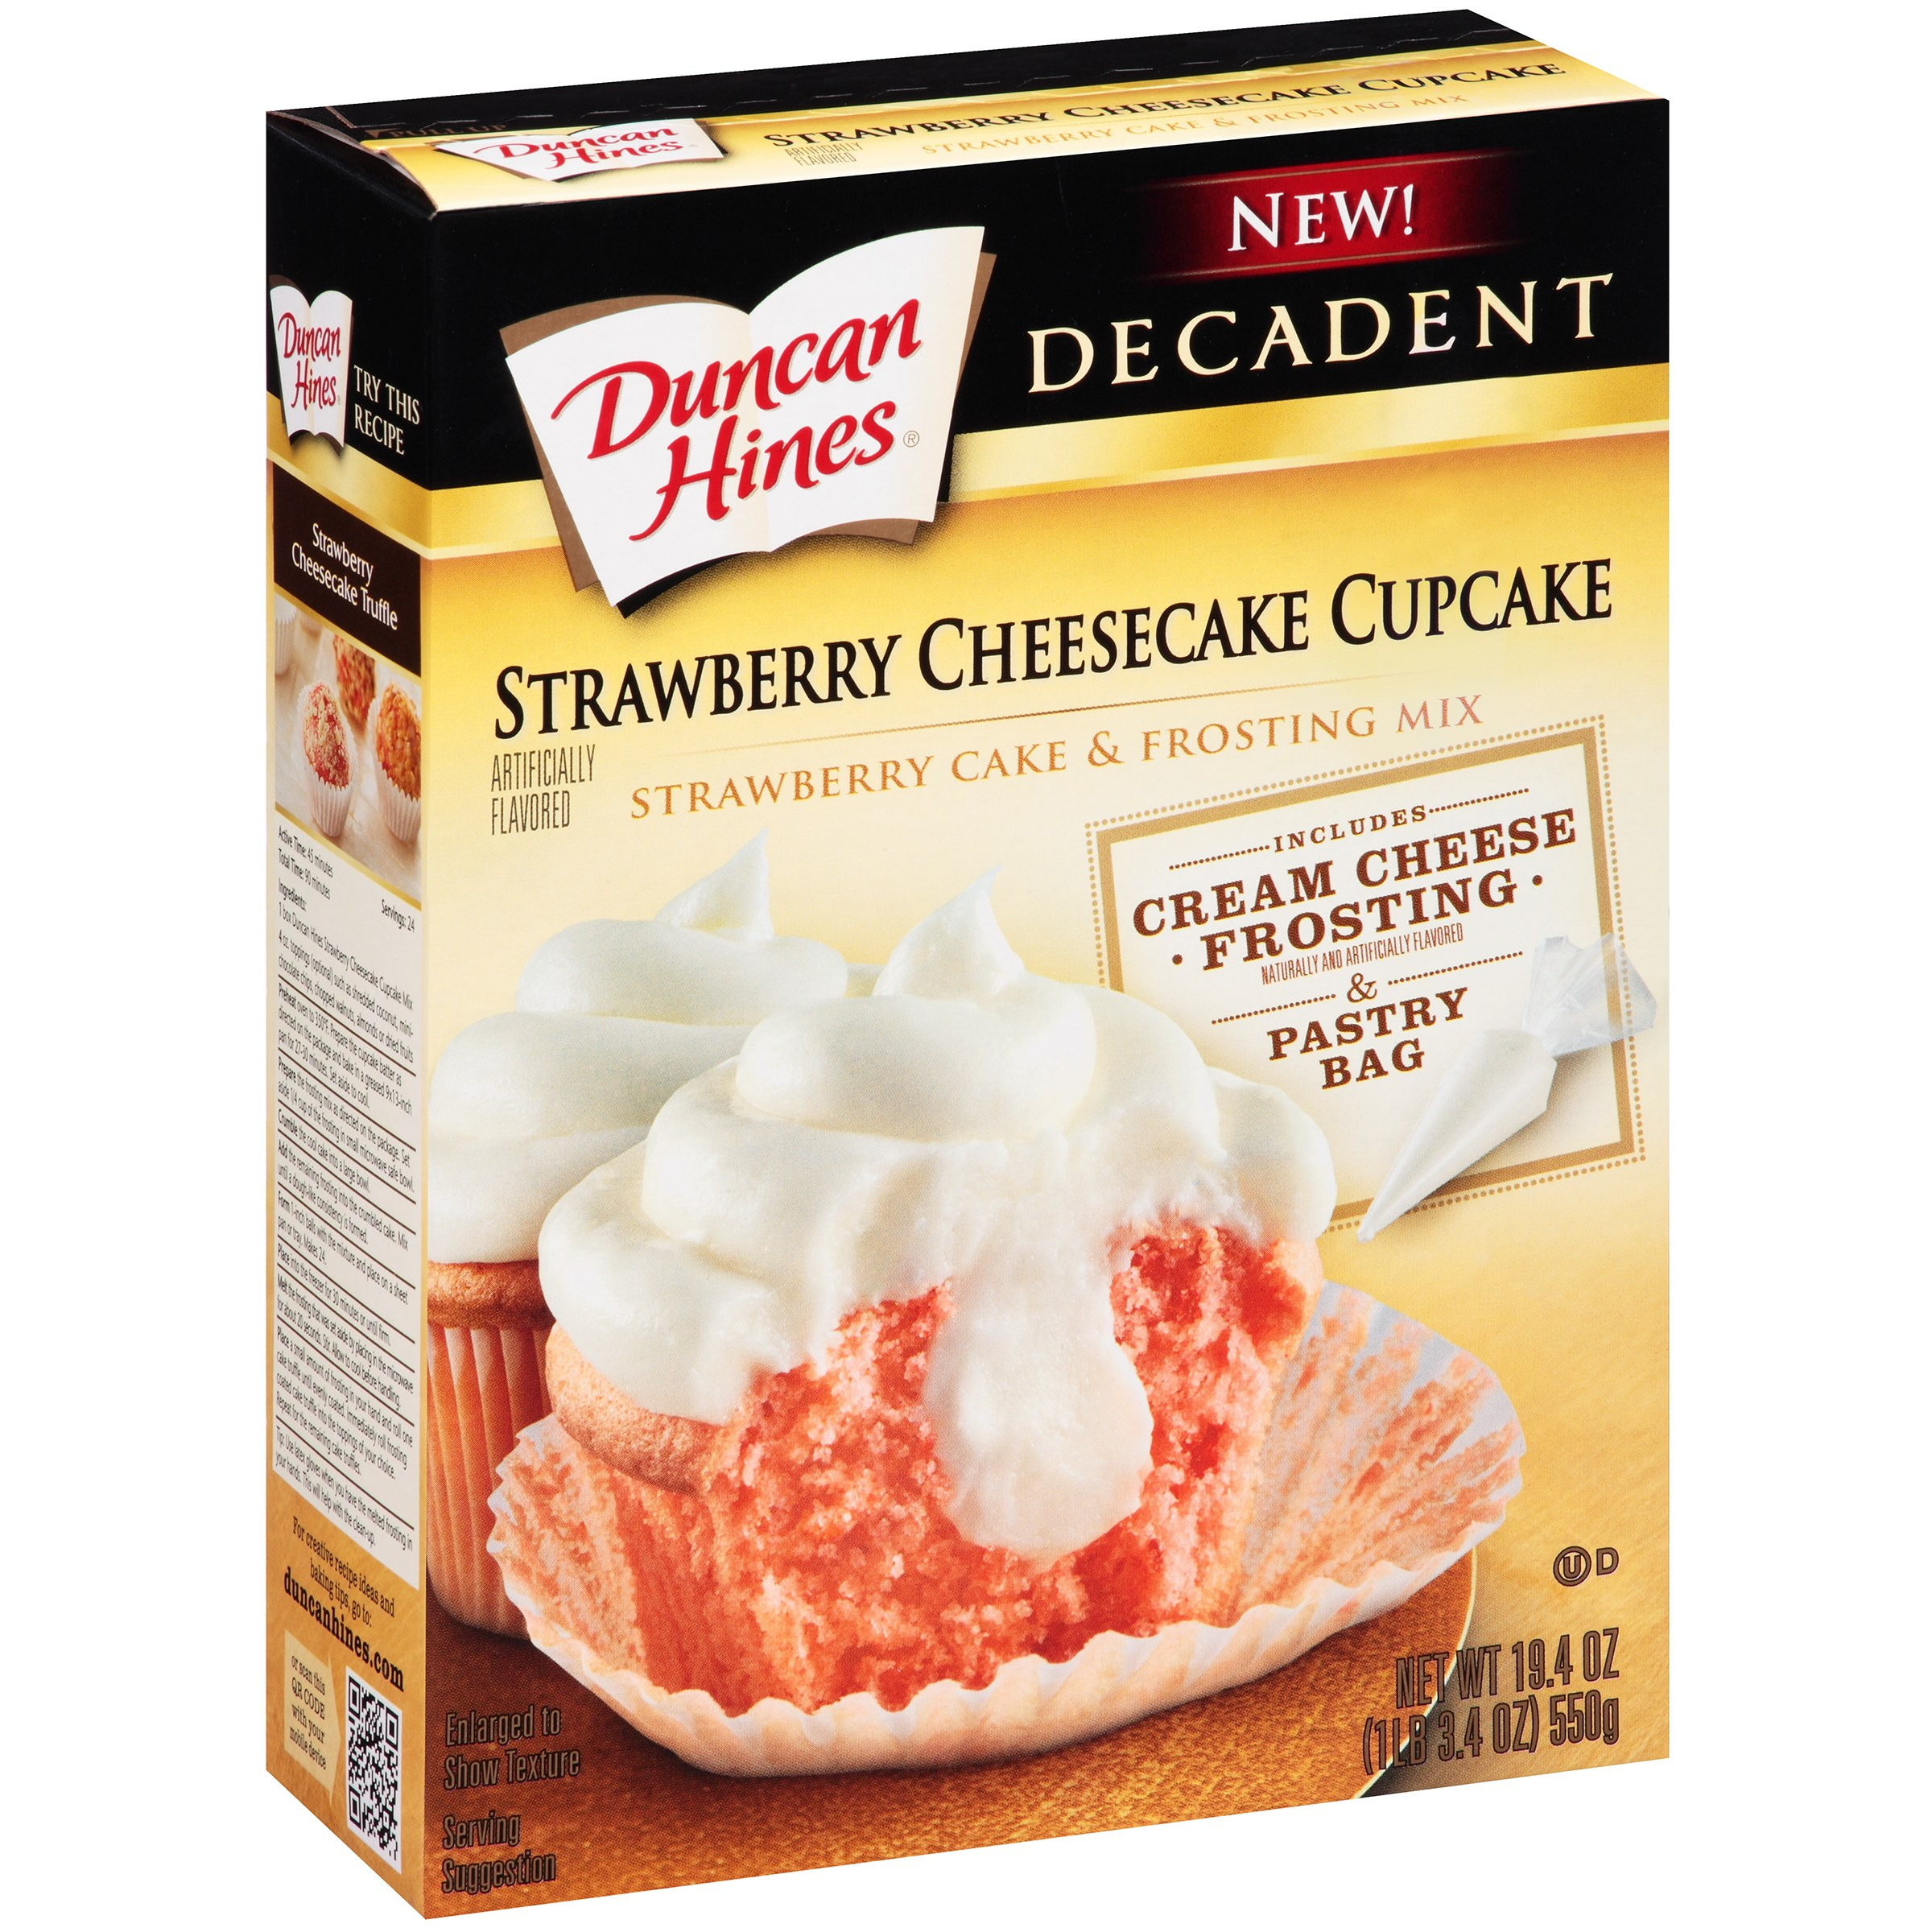 Duncan Hines Decadent Strawberry Cheesecake Cupcake & Frosting Mix, 19.4 OZ by Pinnacle Foods Group LLC